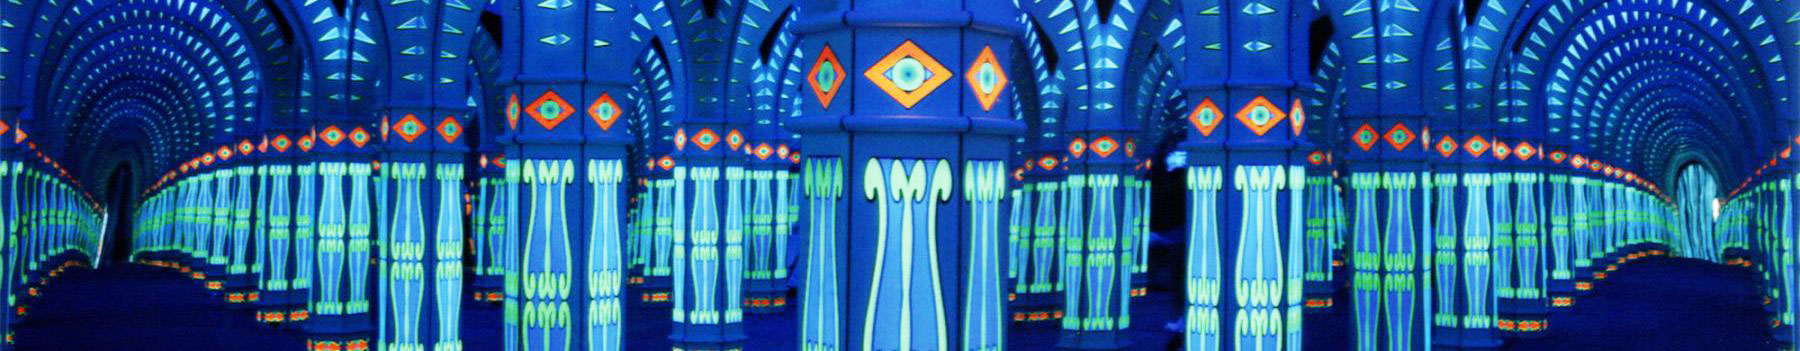 Mirror Maze in Gatlinburg with Music and Light Show